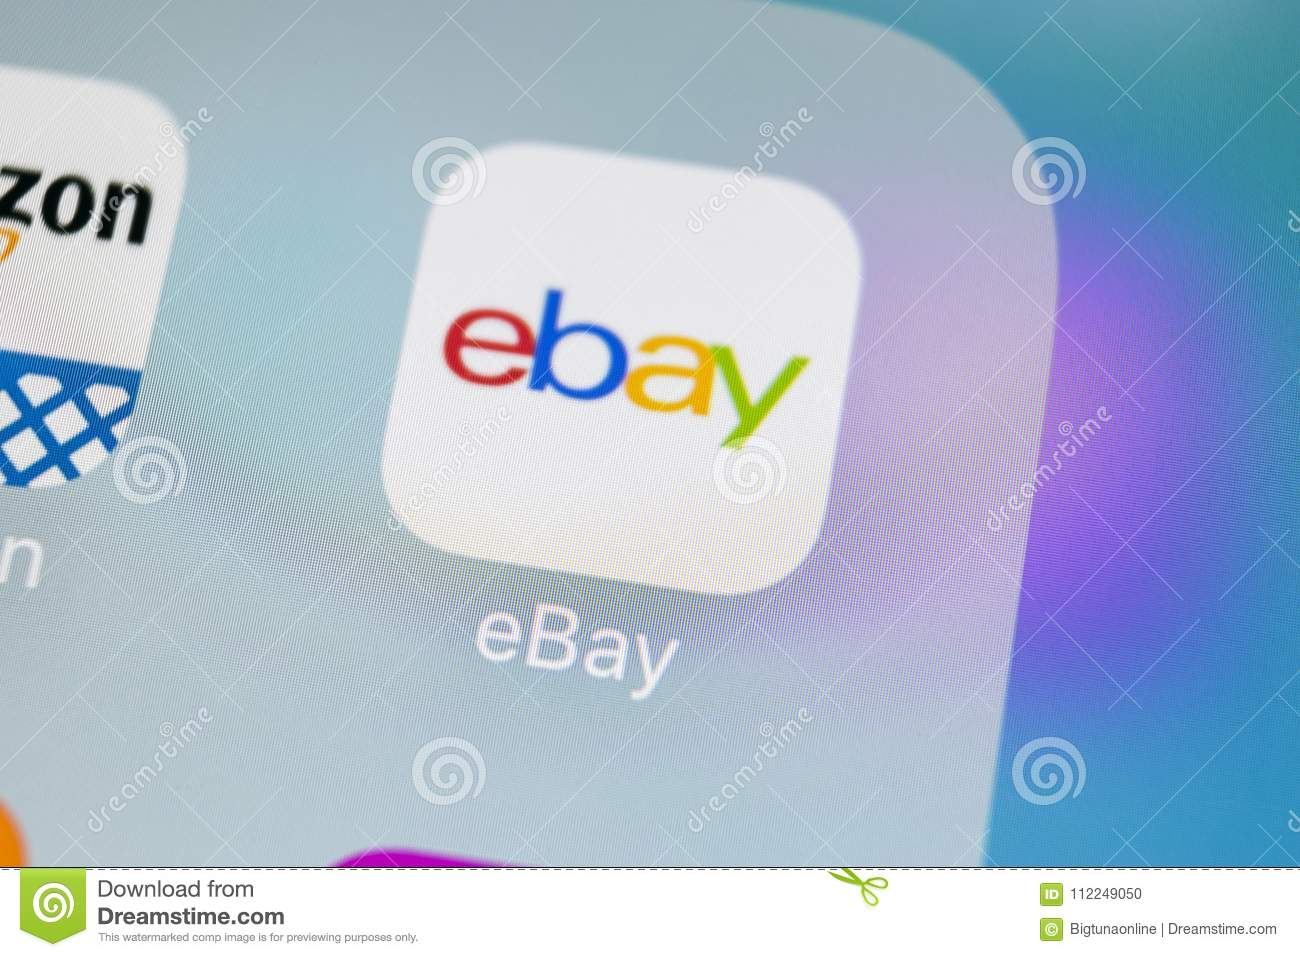 Ebay Application Icon On Apple Iphone X Screen Close Up Ebay App Icon Ebay Com Is Largest Online Auction And Shopping Websites Editorial Image Image Of March Monitor 112249050